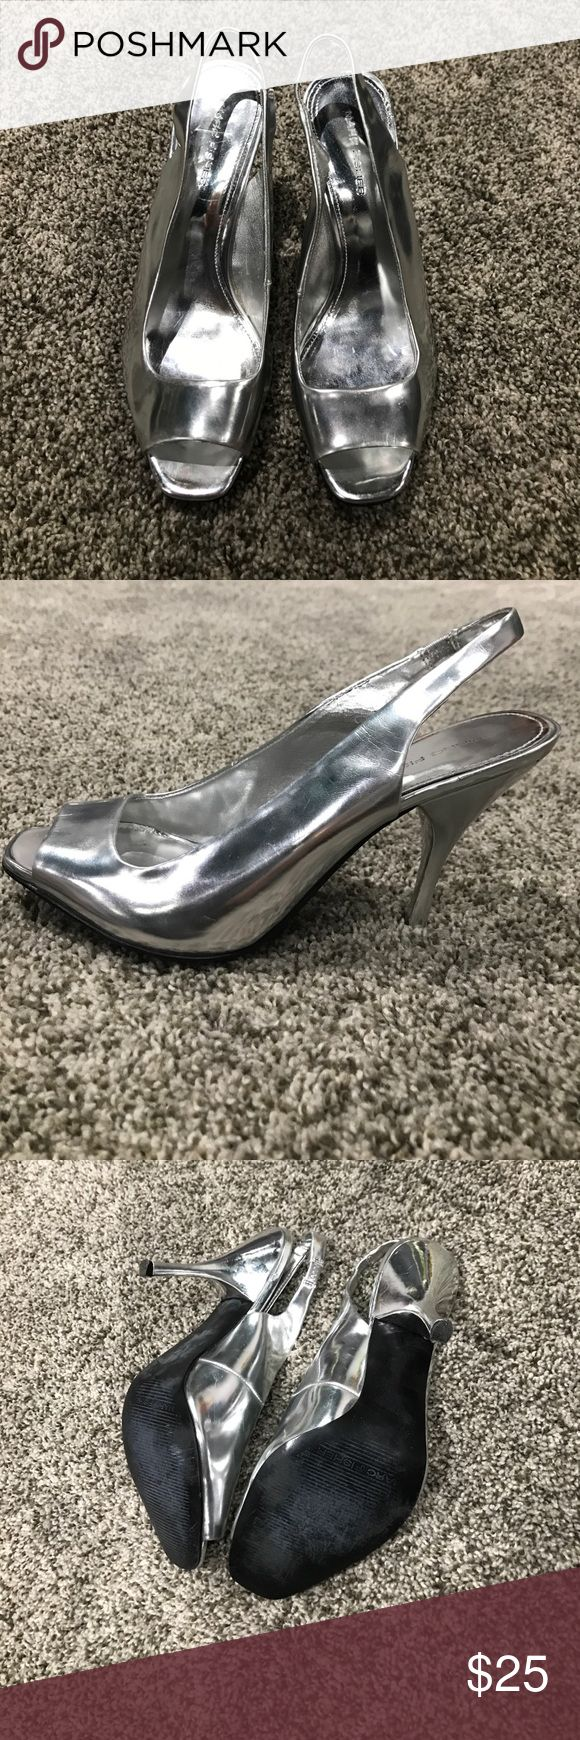 Marc Fisher Silver Peep-Toe heels Shiny peep toe heels by Marc Fisher, worn once! Has some faint scuffing, otherwise good condition. Marc Fisher Shoes Heels